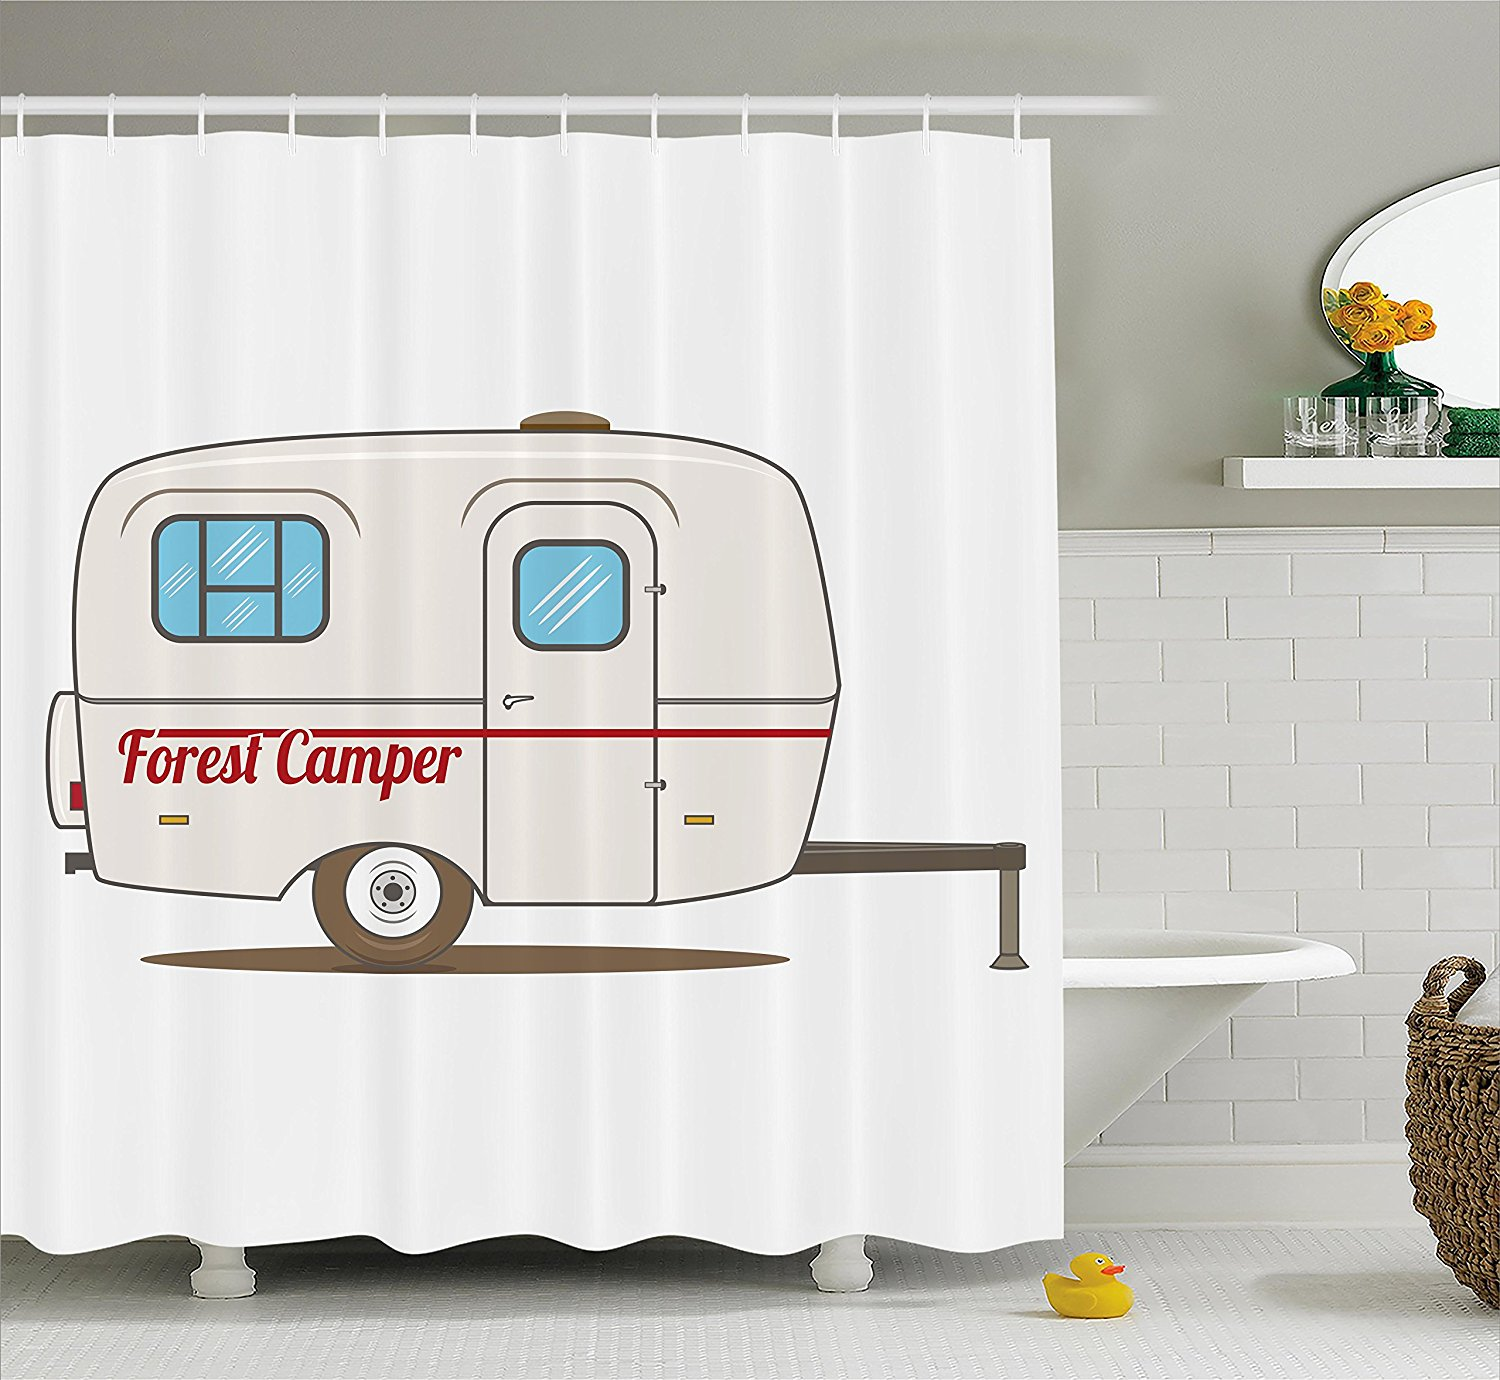 Mustache shower curtain - Memory Home Shower Curtain Cute Vintage Caravan Travelers Truck On The Road Retro Design Fabric Bathroom